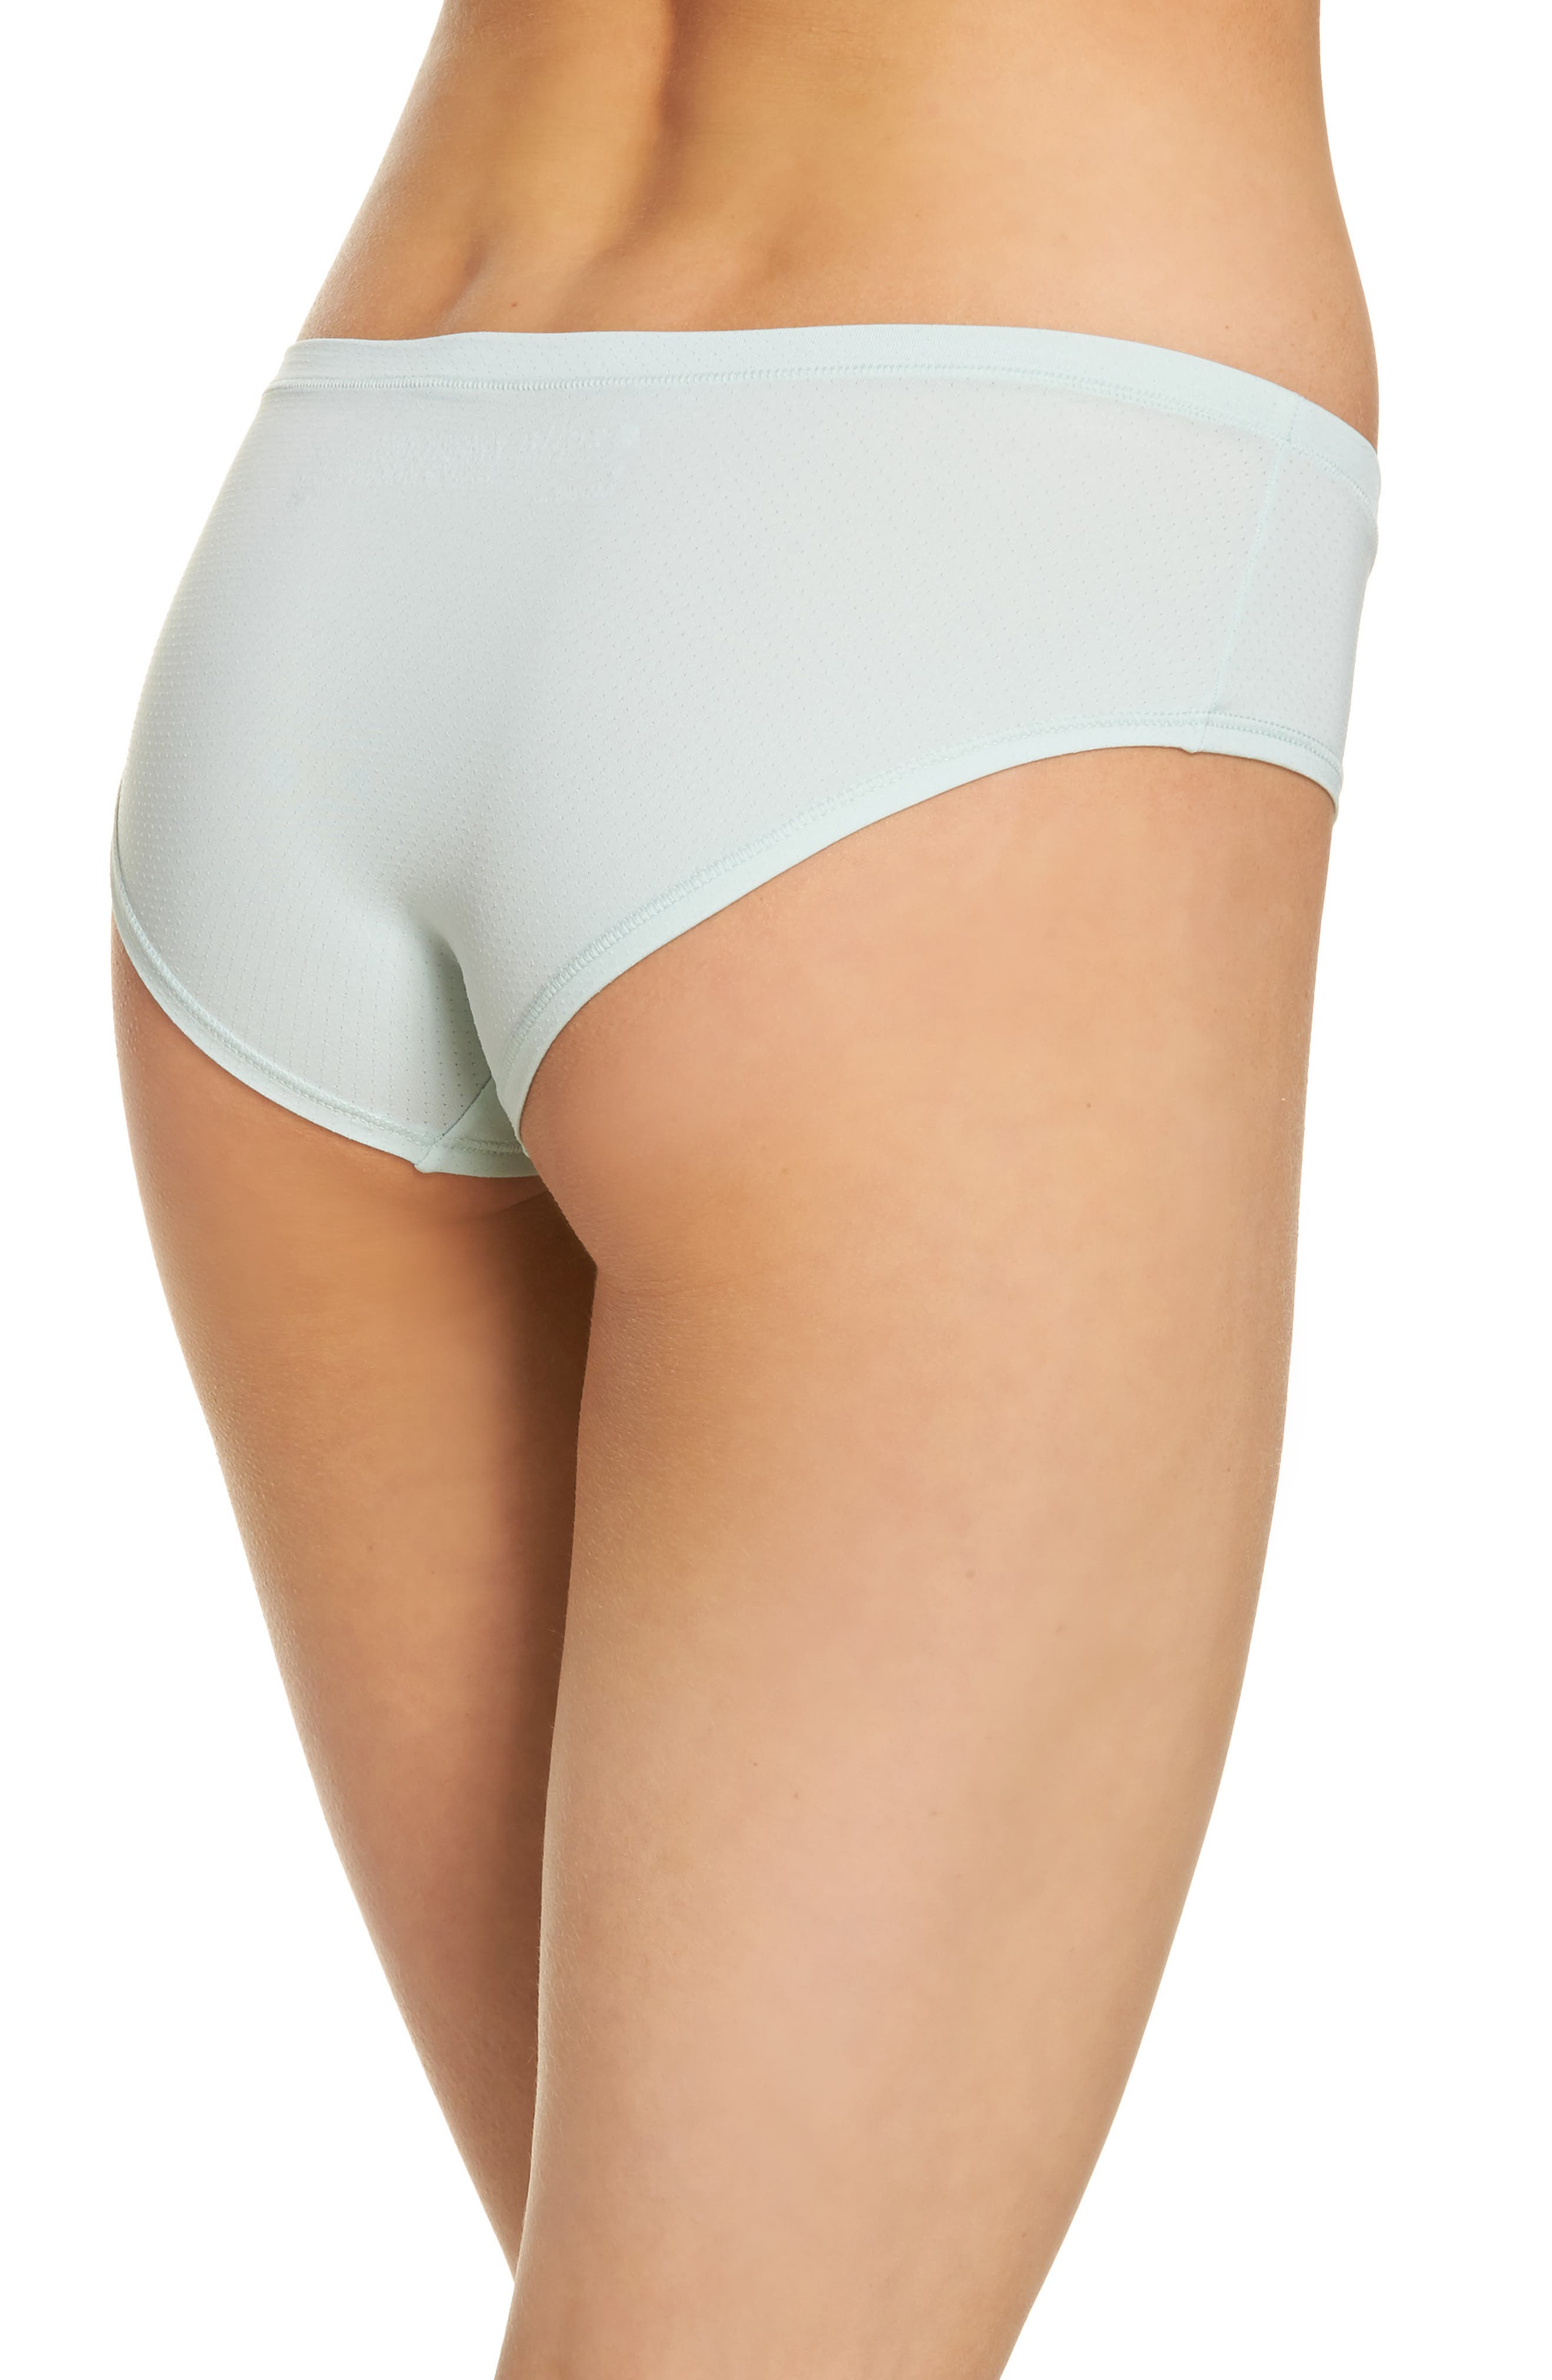 Alternate Image 2  - Zella Body Active Mesh Hipster Briefs (3 for $33)